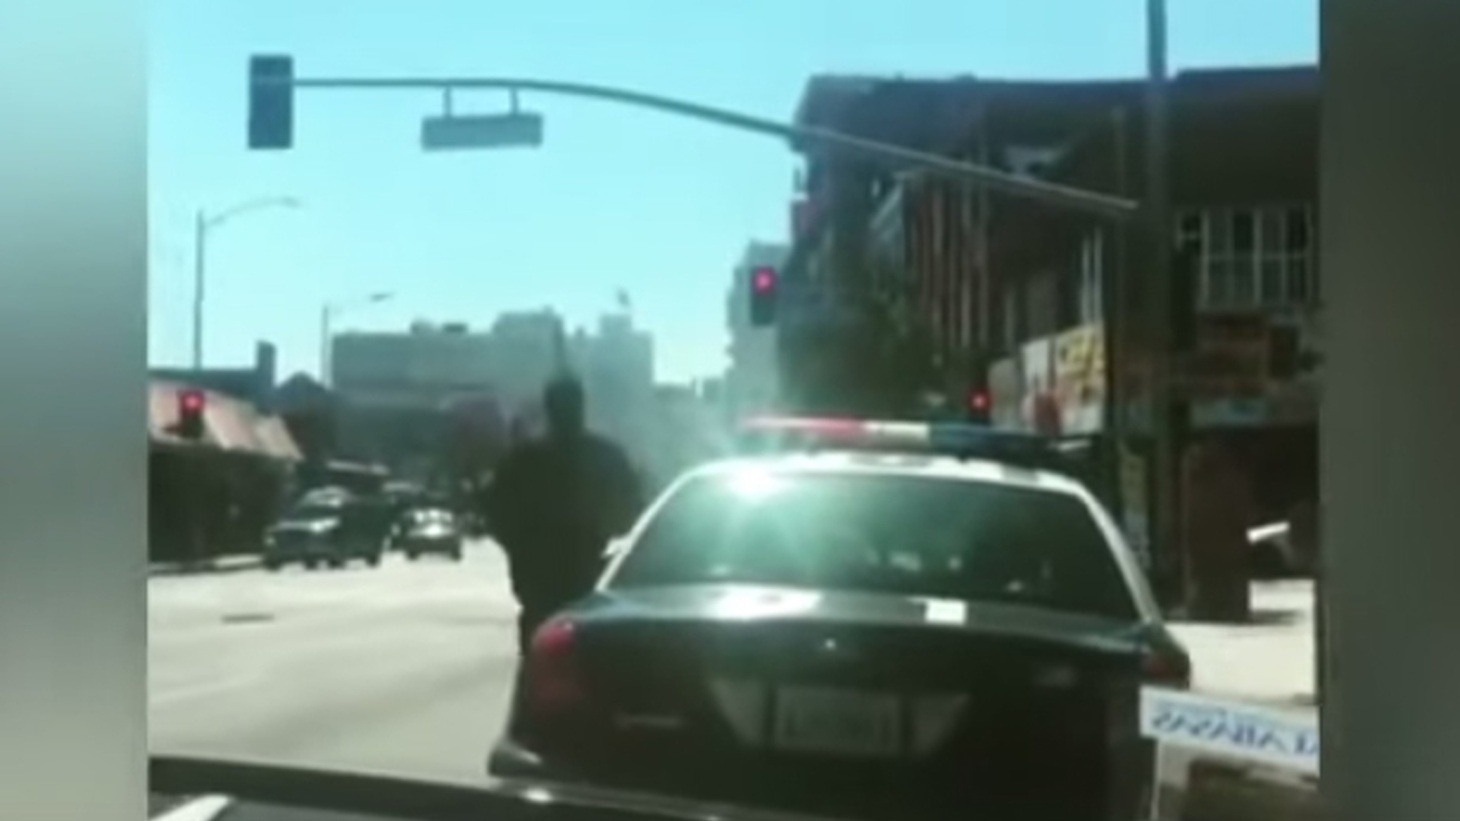 The year is only nine months over, but officers of the LAPD have already killed 18 people — as many as in all of 2014. Last Saturday night an unarmed man was killed by officers after the back window of their patrol car was broken out by a beer bottle. Did the dead man throw the bottle? What was the role of a video that led to an official warning that officers on patrol might be in danger?